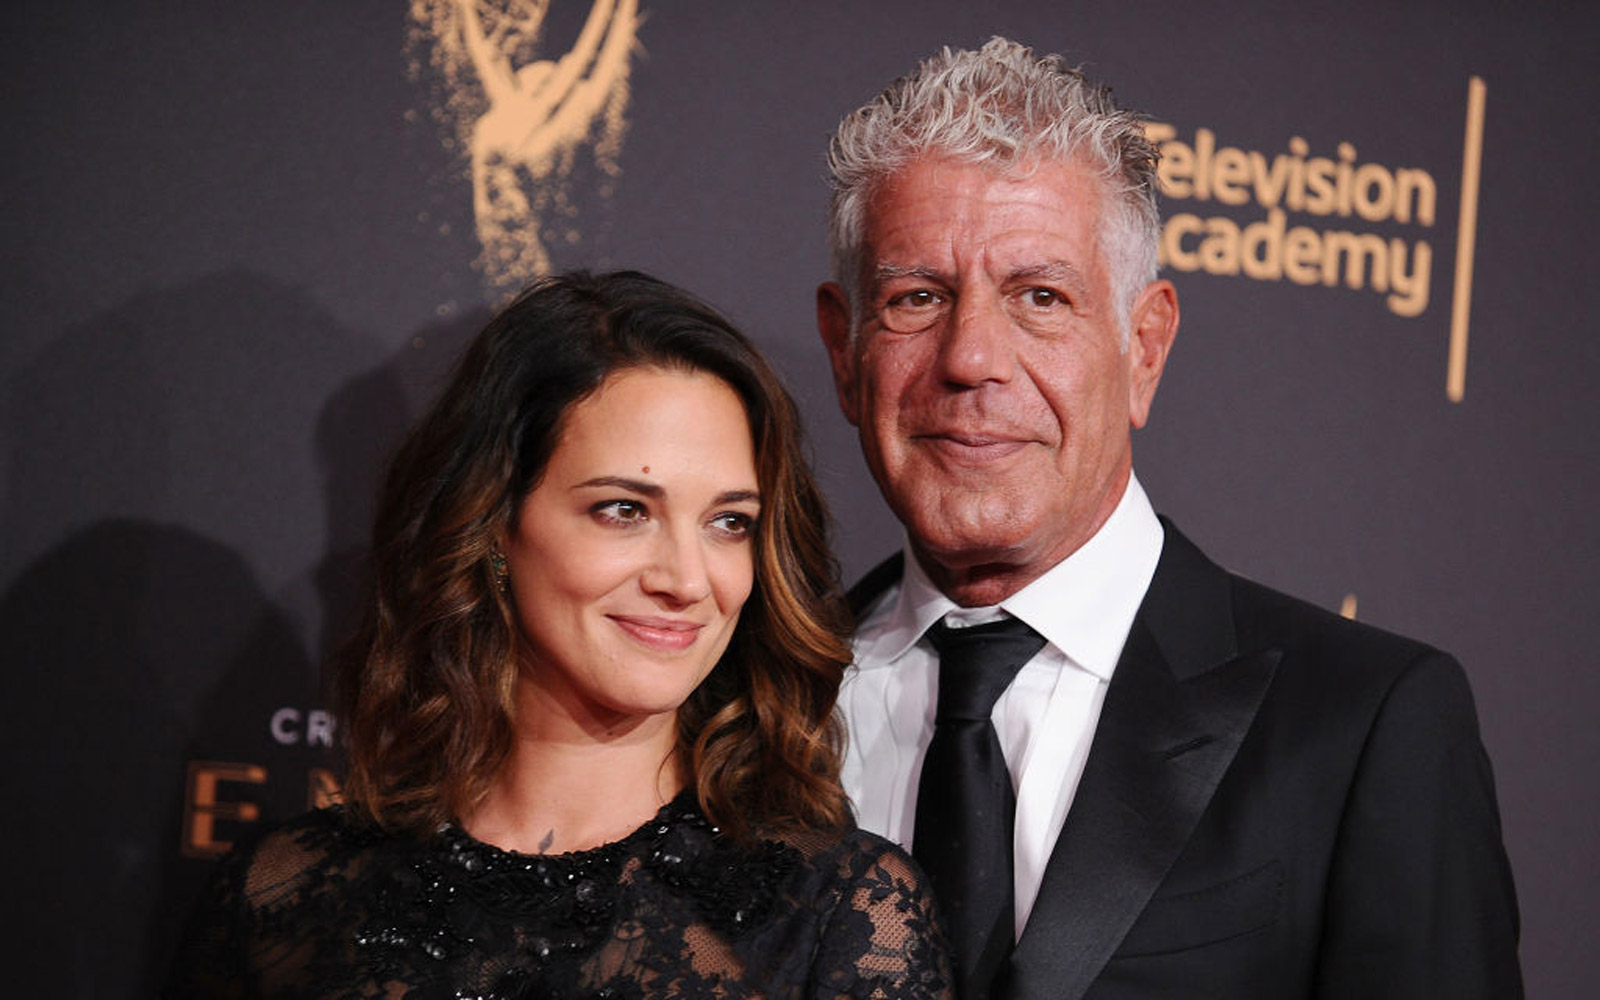 Anthony Bourdain Posts Thoughtful Selfie With Girlfriend Asia Argento